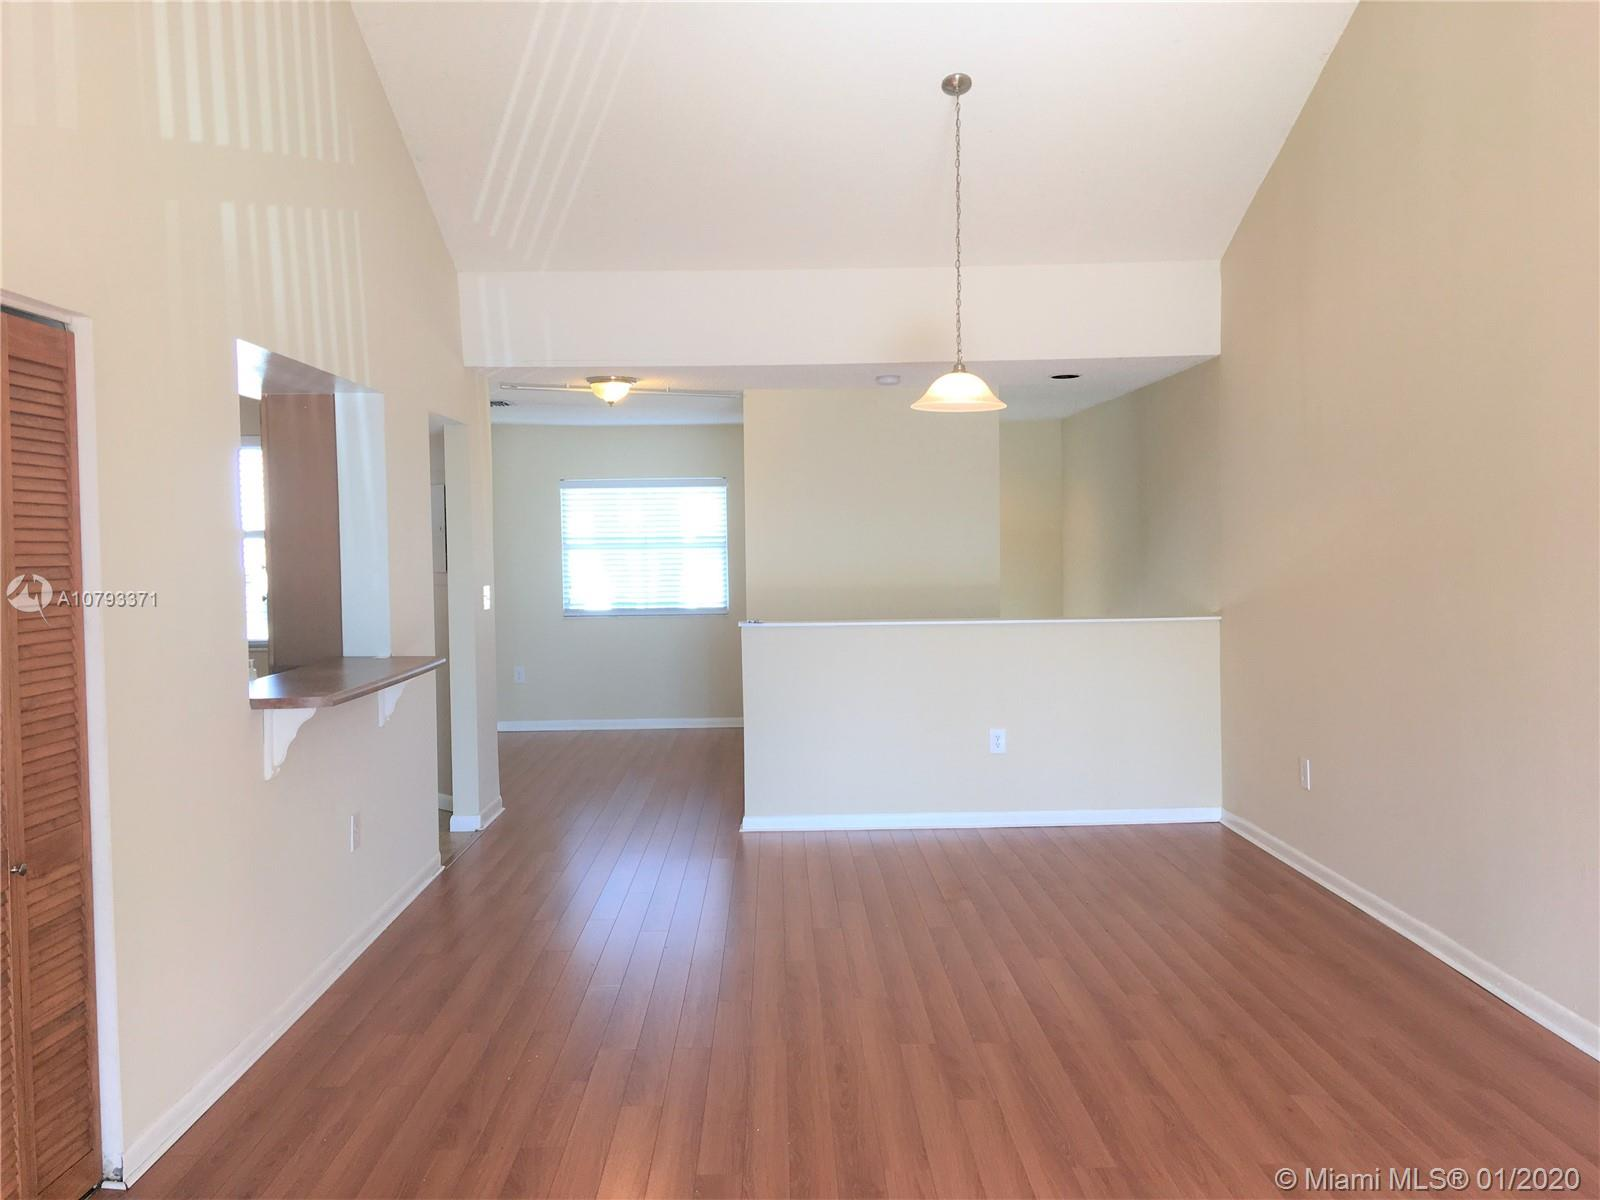 9740 NW 49th Ter #373 For Sale A10793371, FL